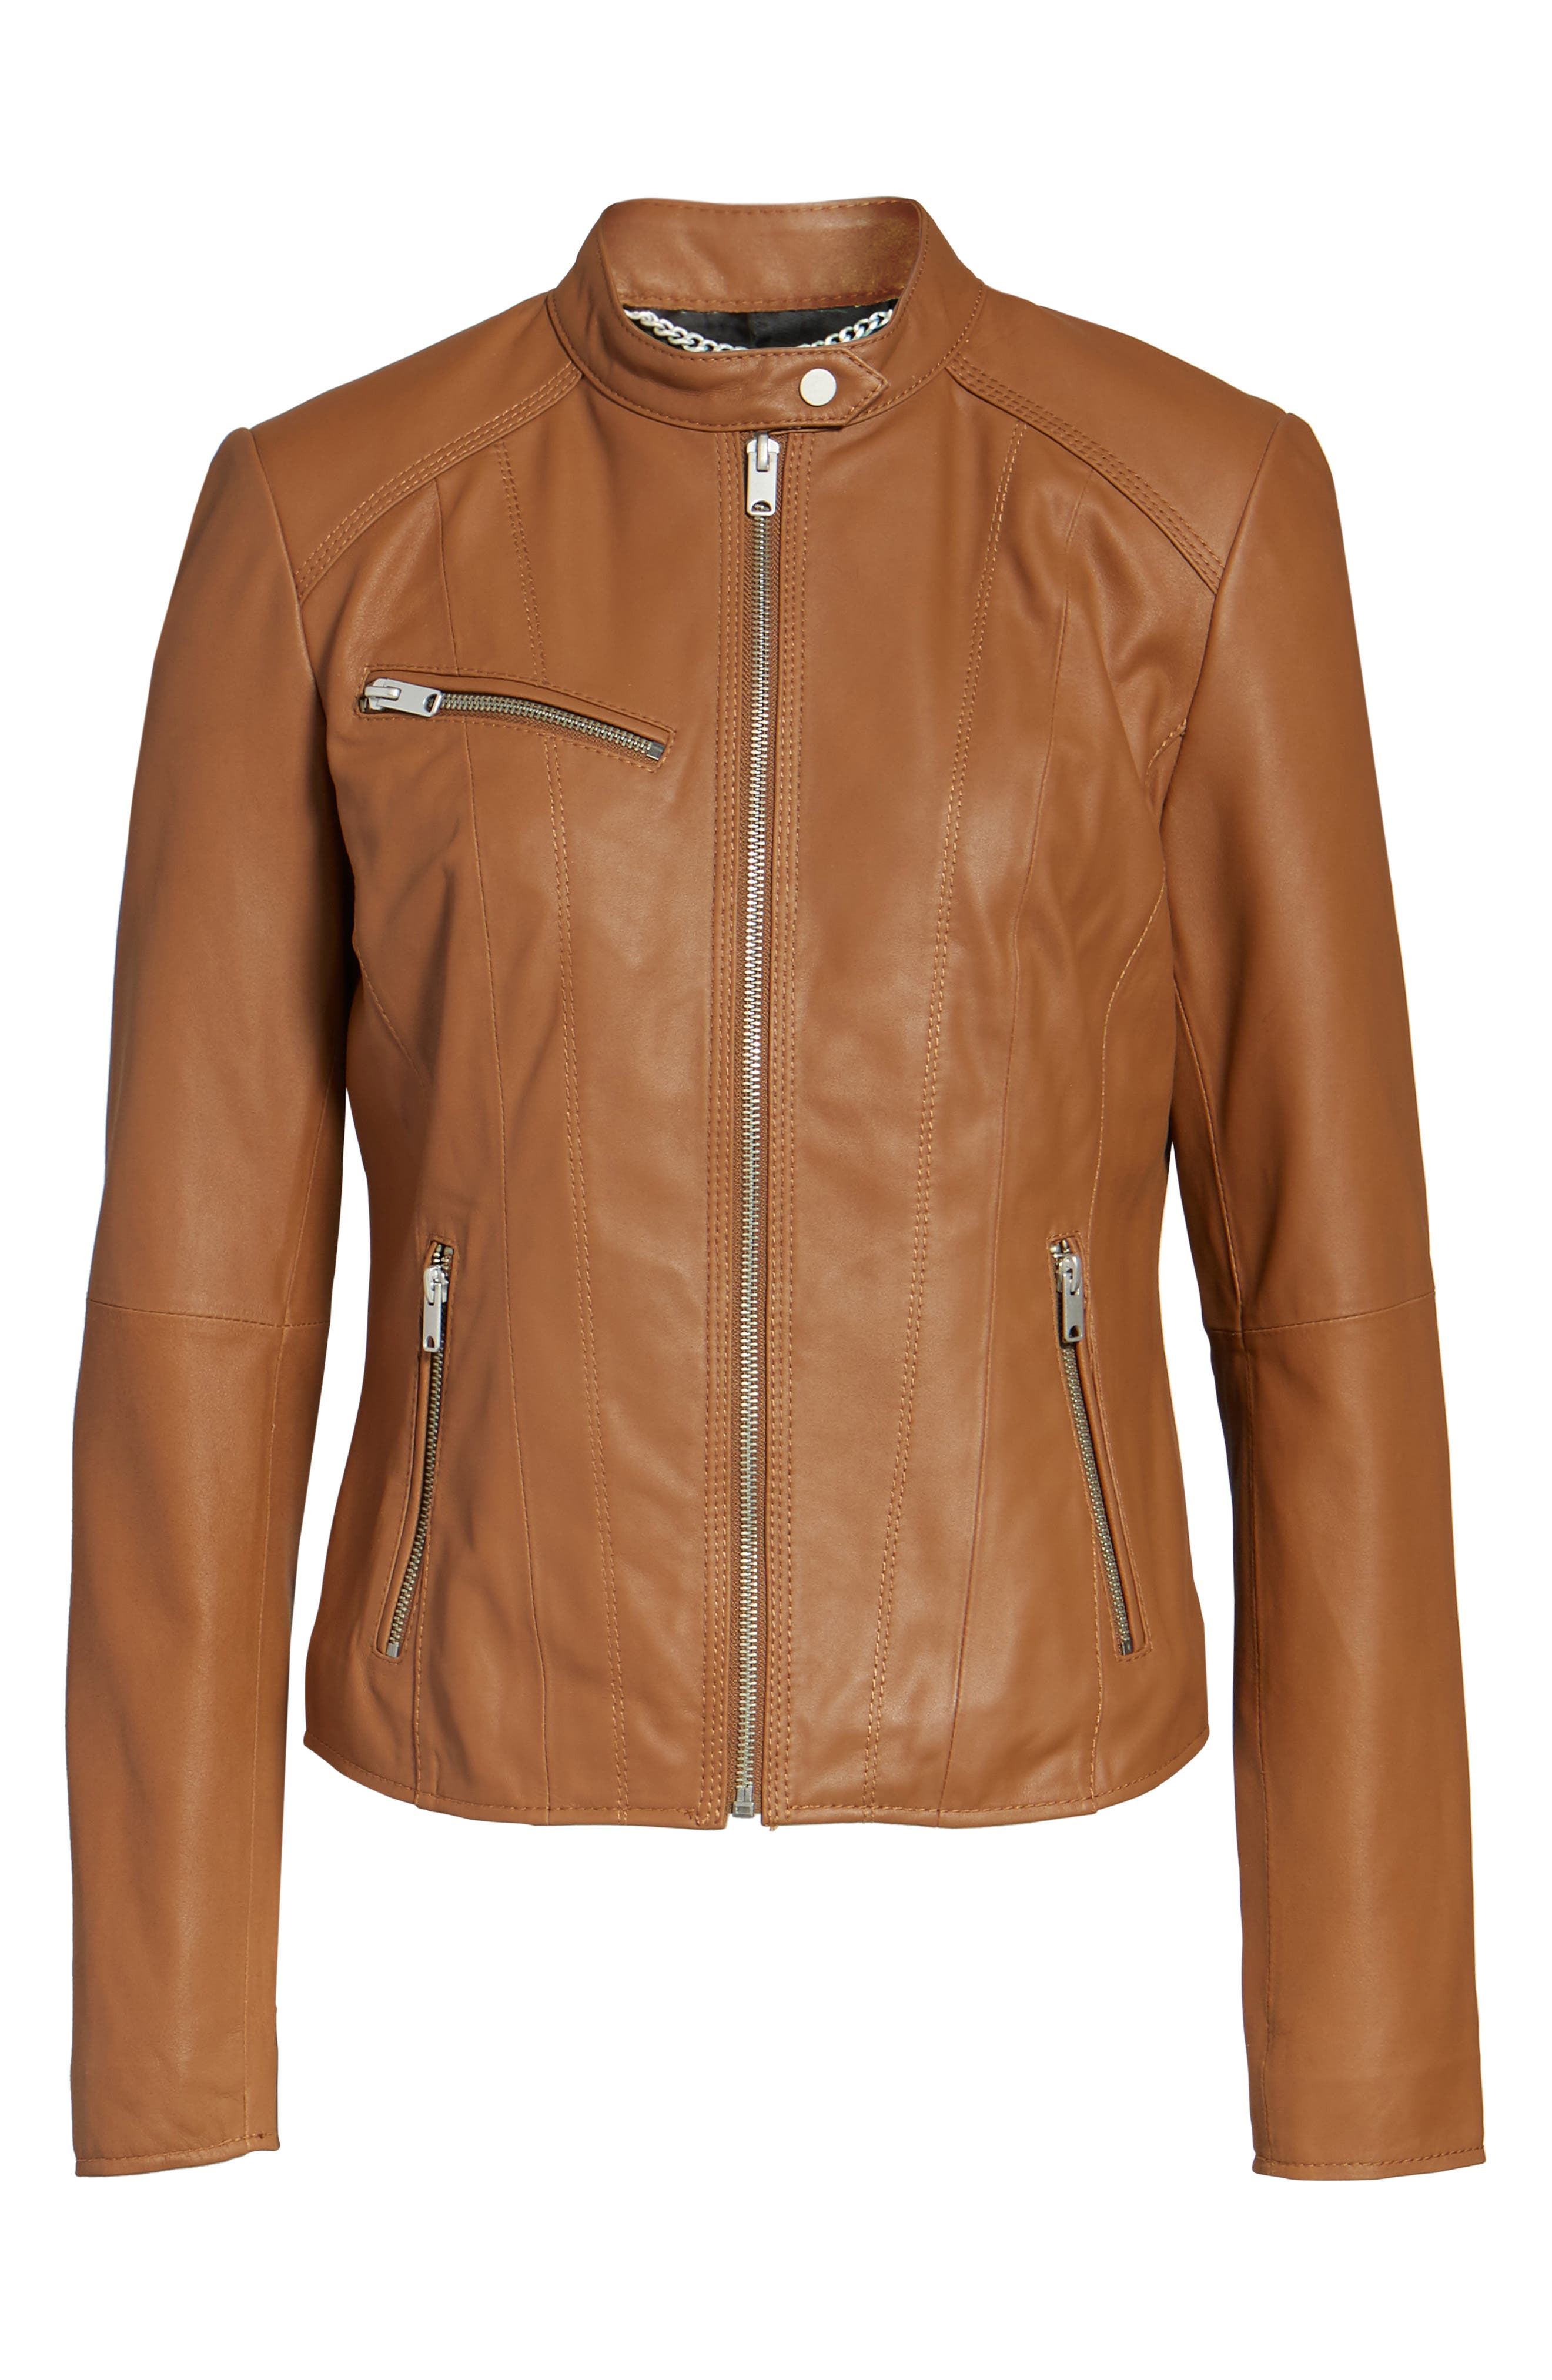 Andrew Marc Felicity Leather Moto Jacket,                             Alternate thumbnail 10, color,